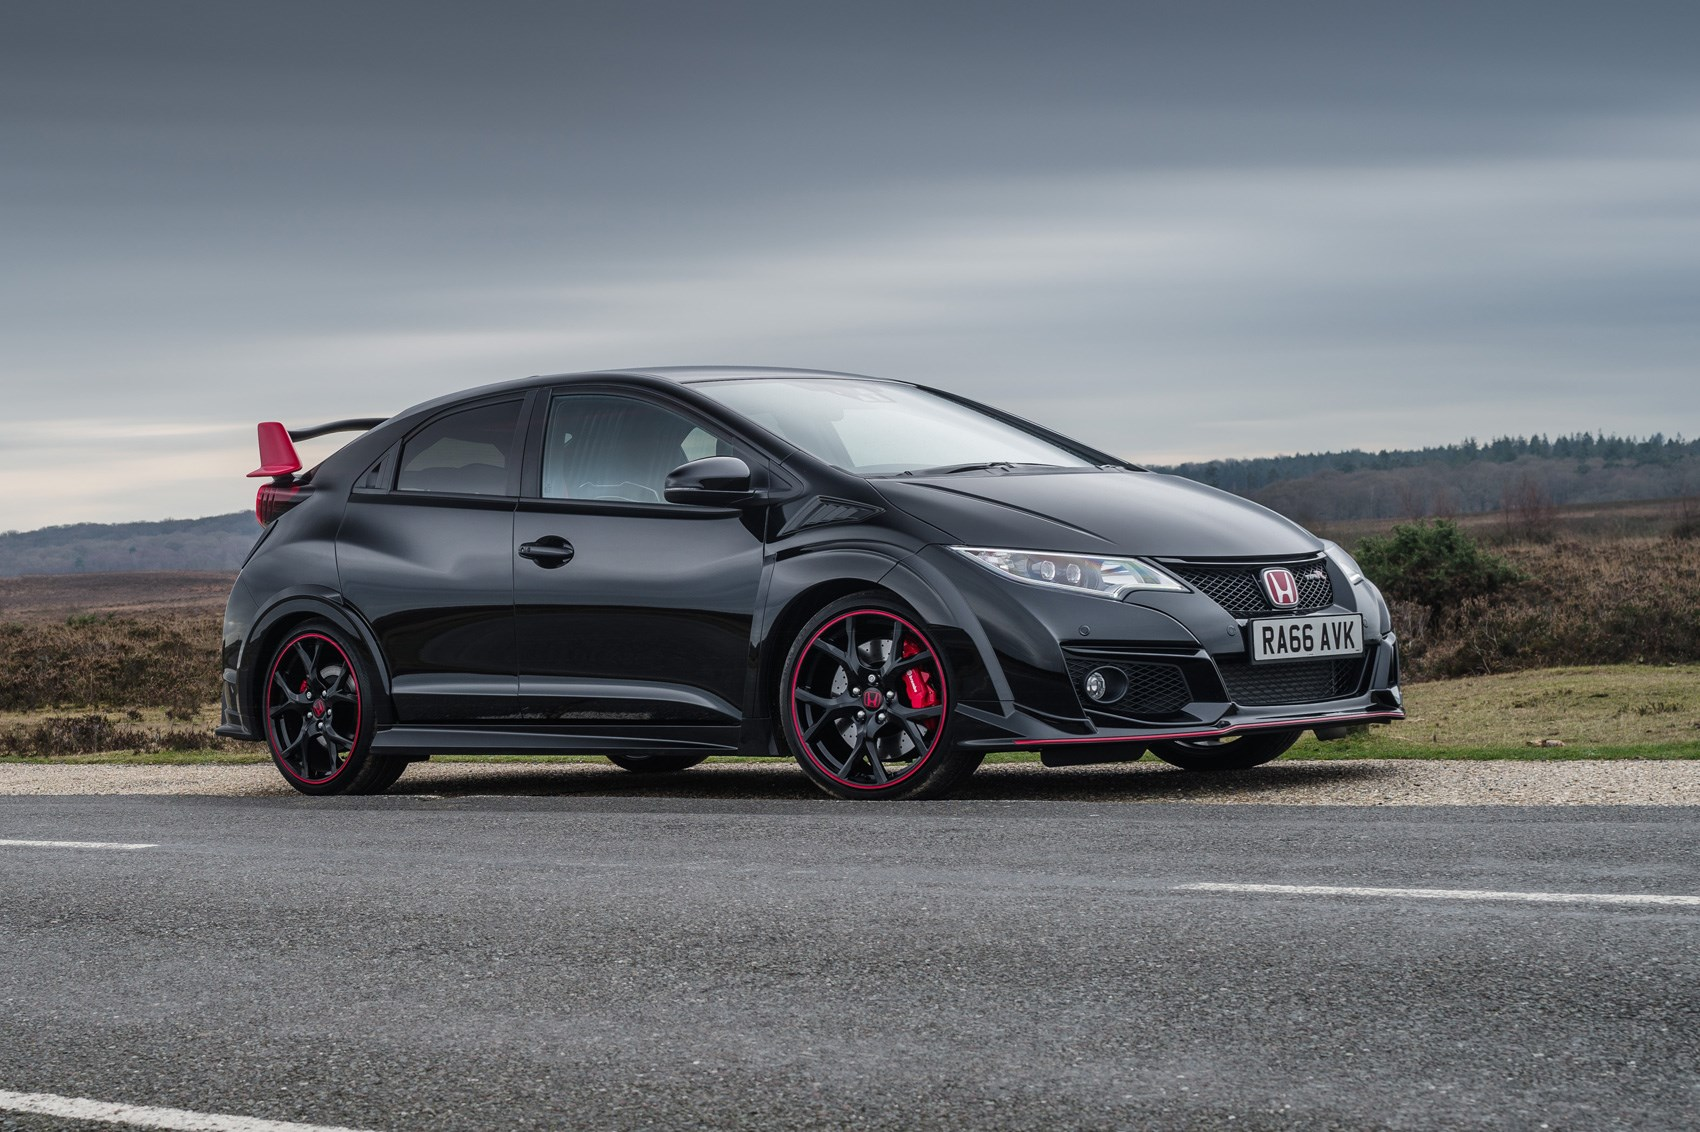 Honda Civic Type R Black Edition 2017 runout model marks end of